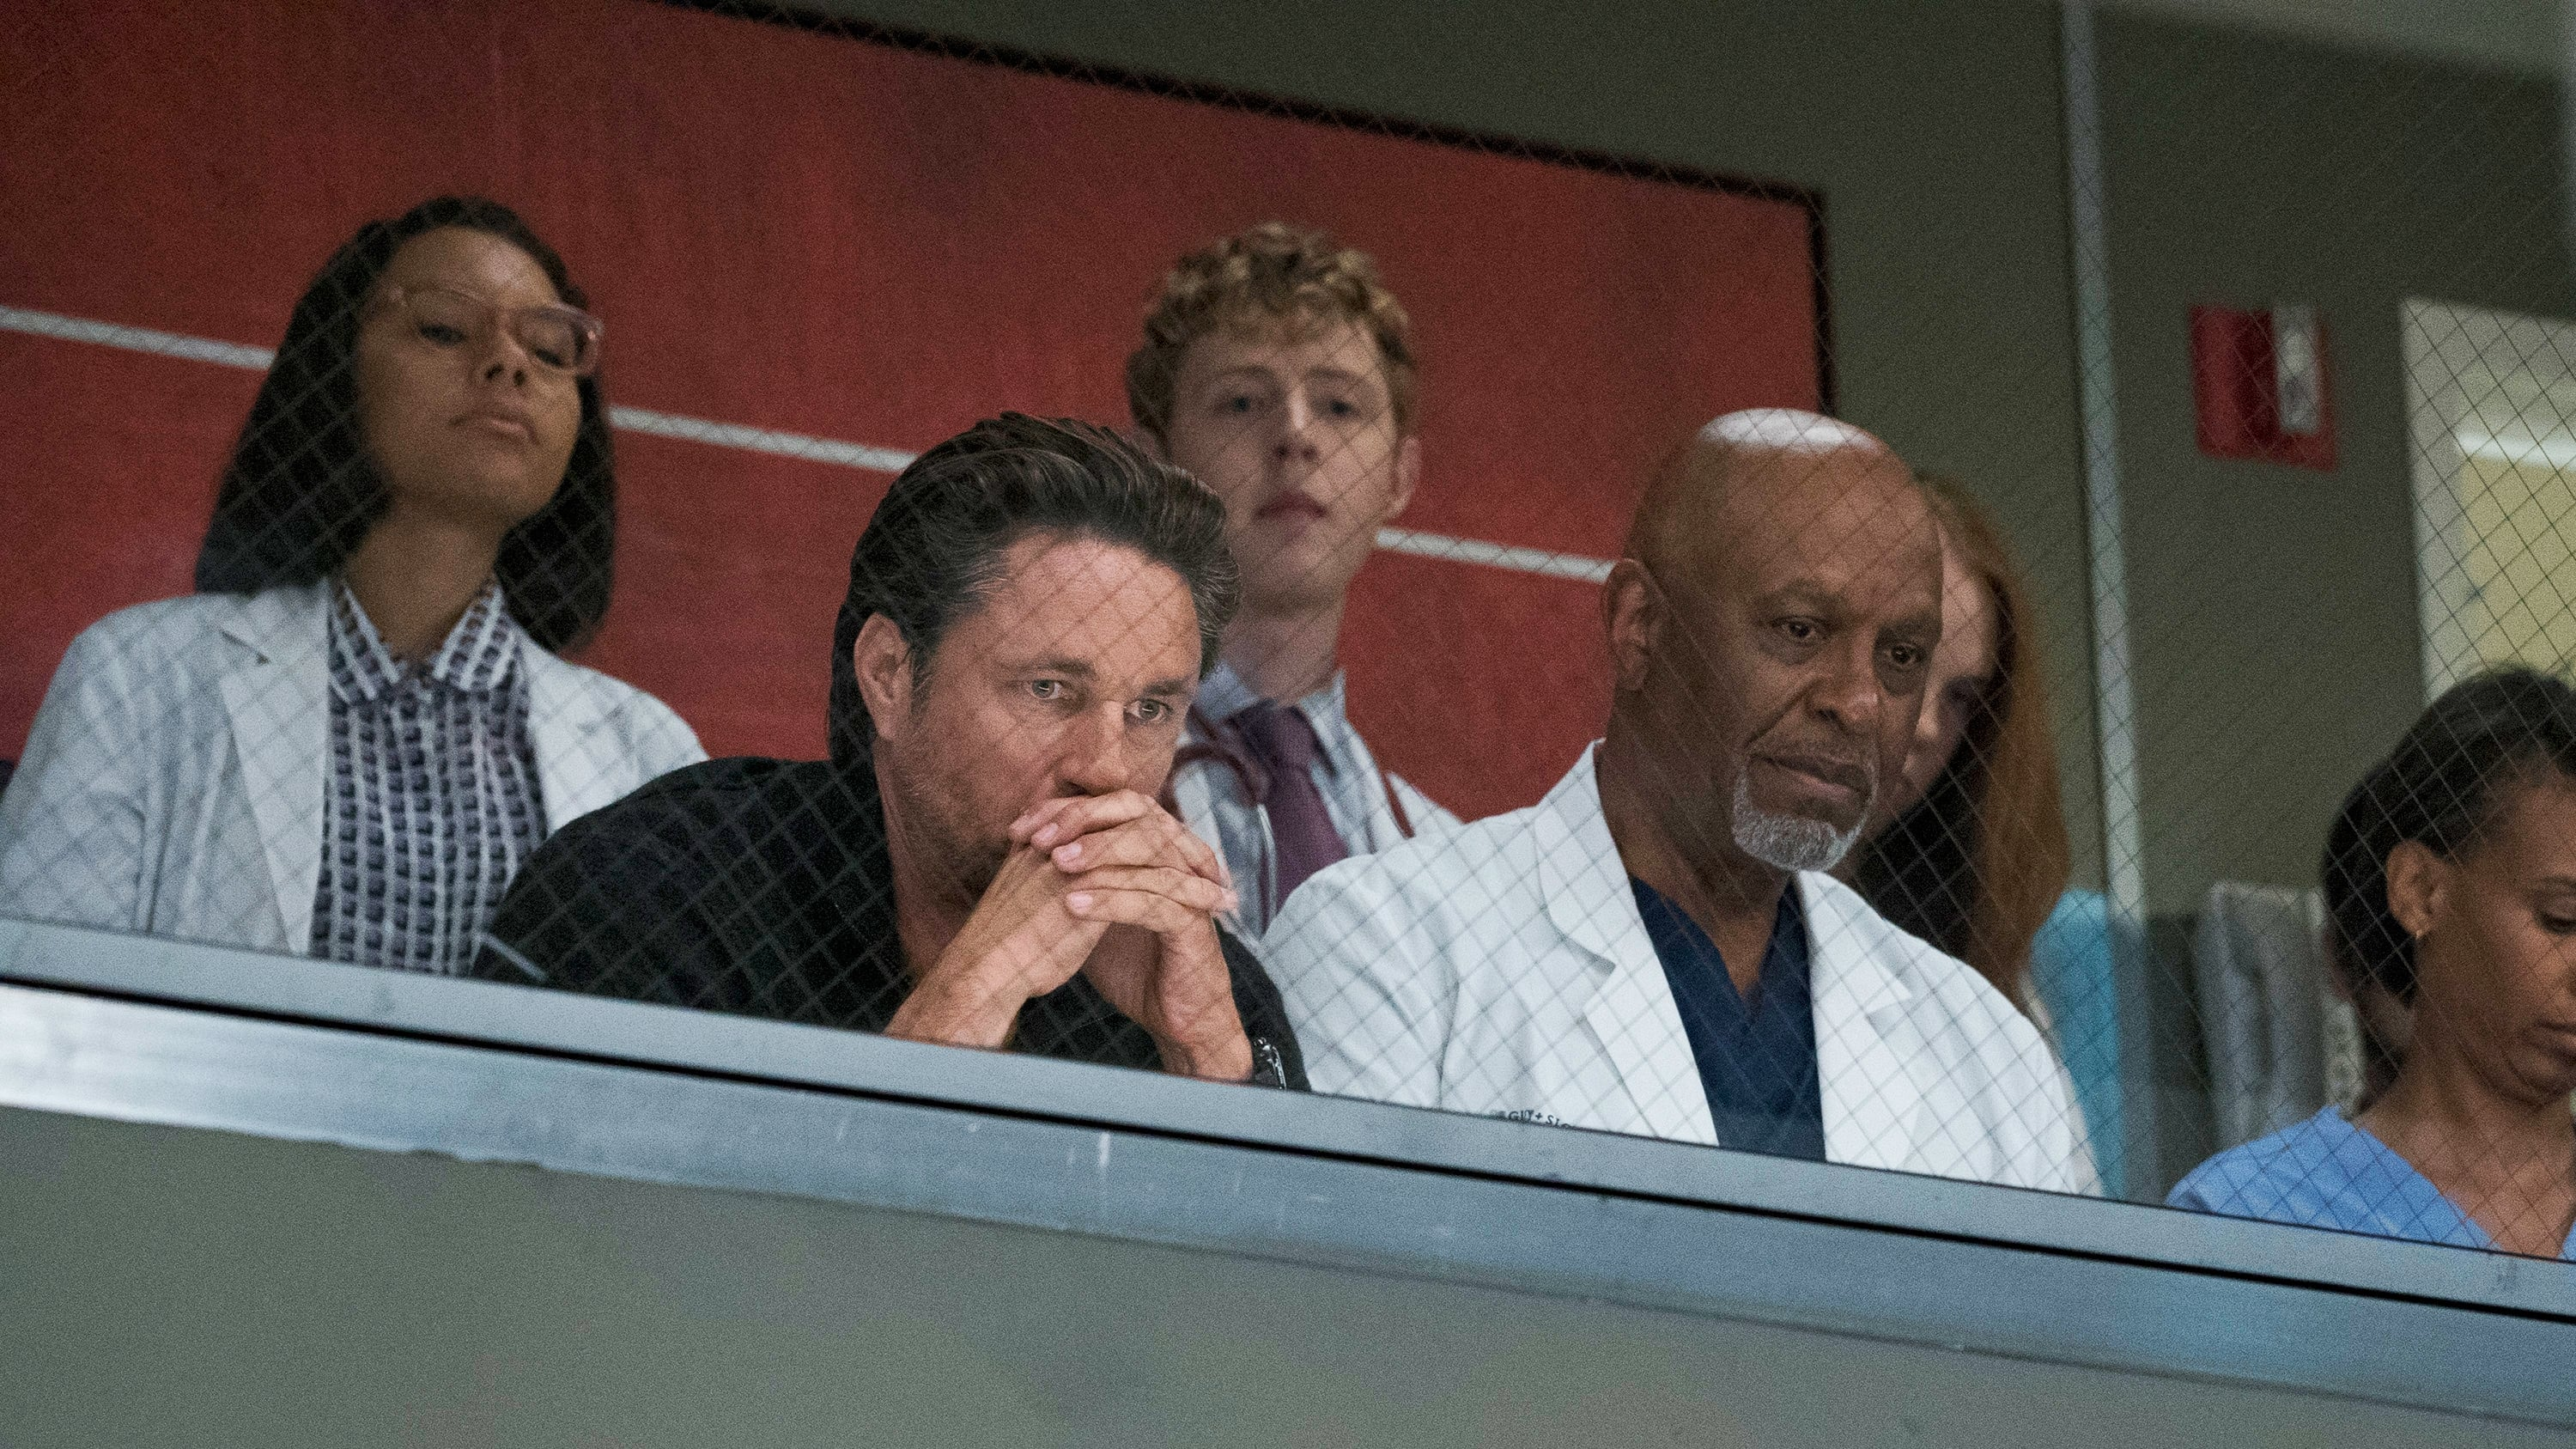 Grey's Anatomy - Season 14 Episode 1 : Break Down the House